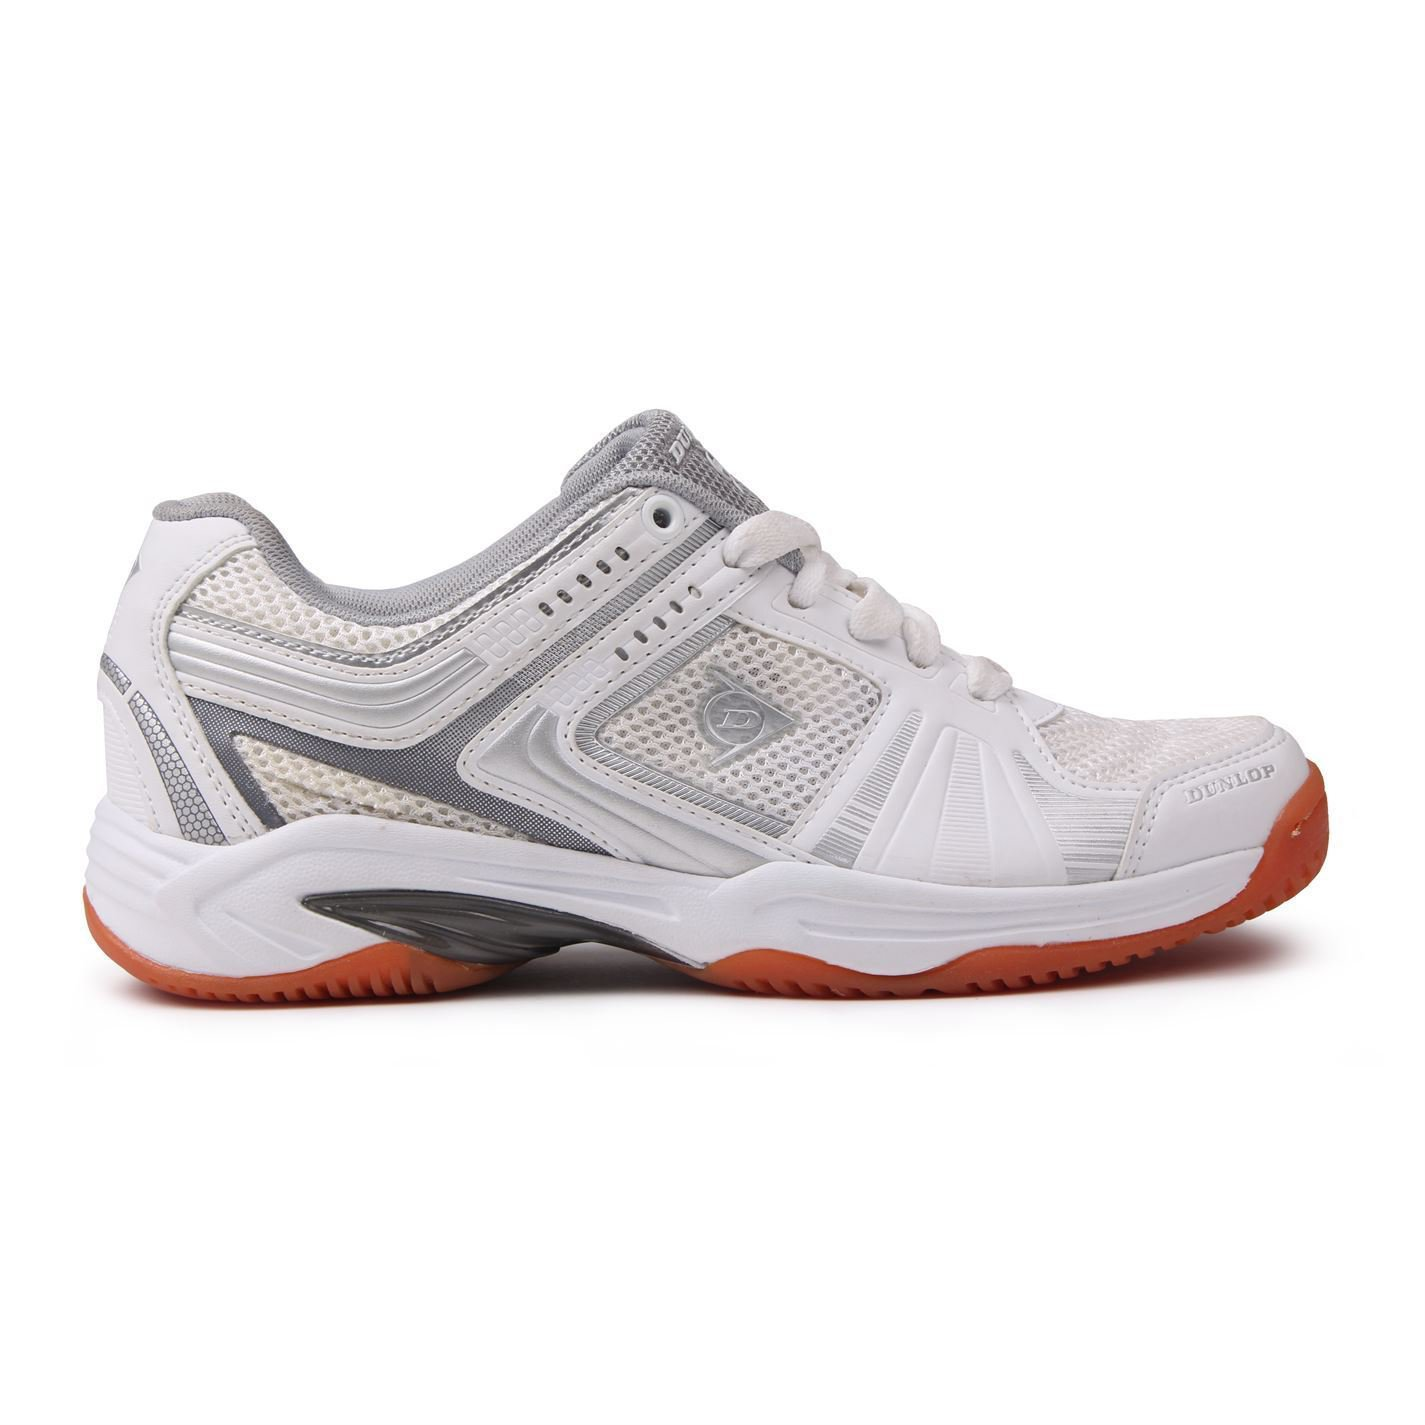 Dunlop Women Ladies Sports Training TPU Arch Lightweight Stable Squash Shoes New